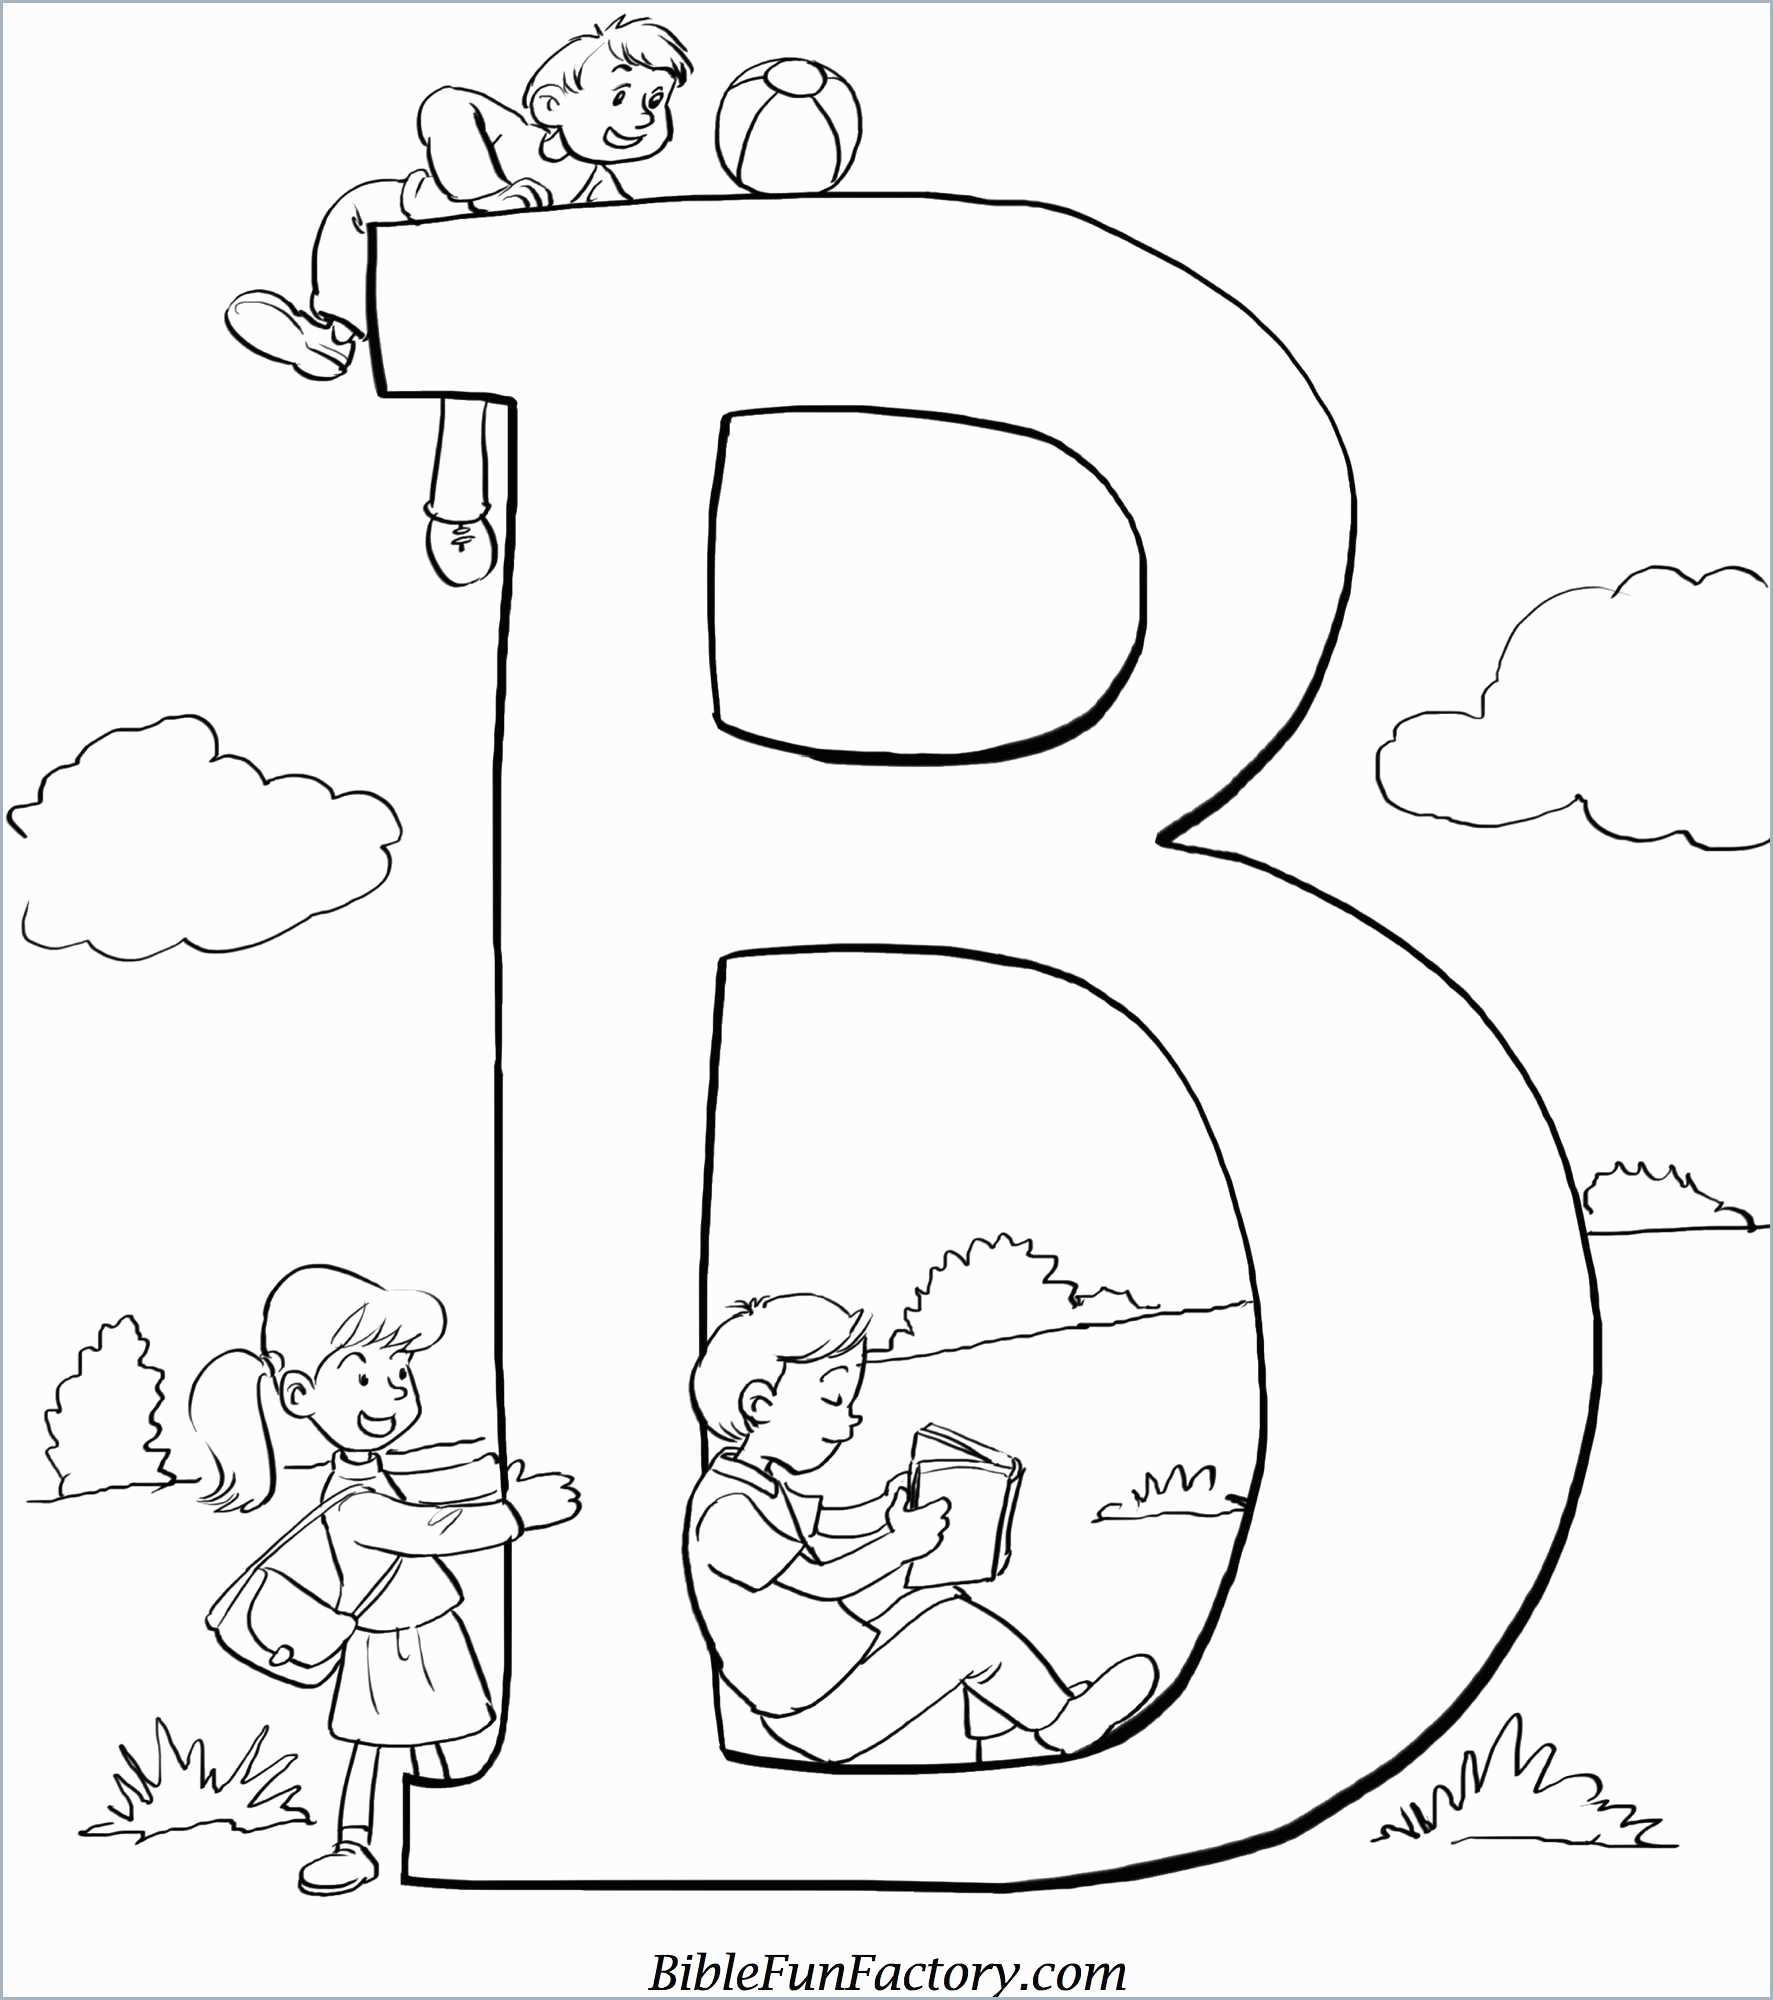 Free Printable Bible Story Coloring Pages 7084 | Longlifefamilystudy - Free Printable Bible Story Coloring Pages